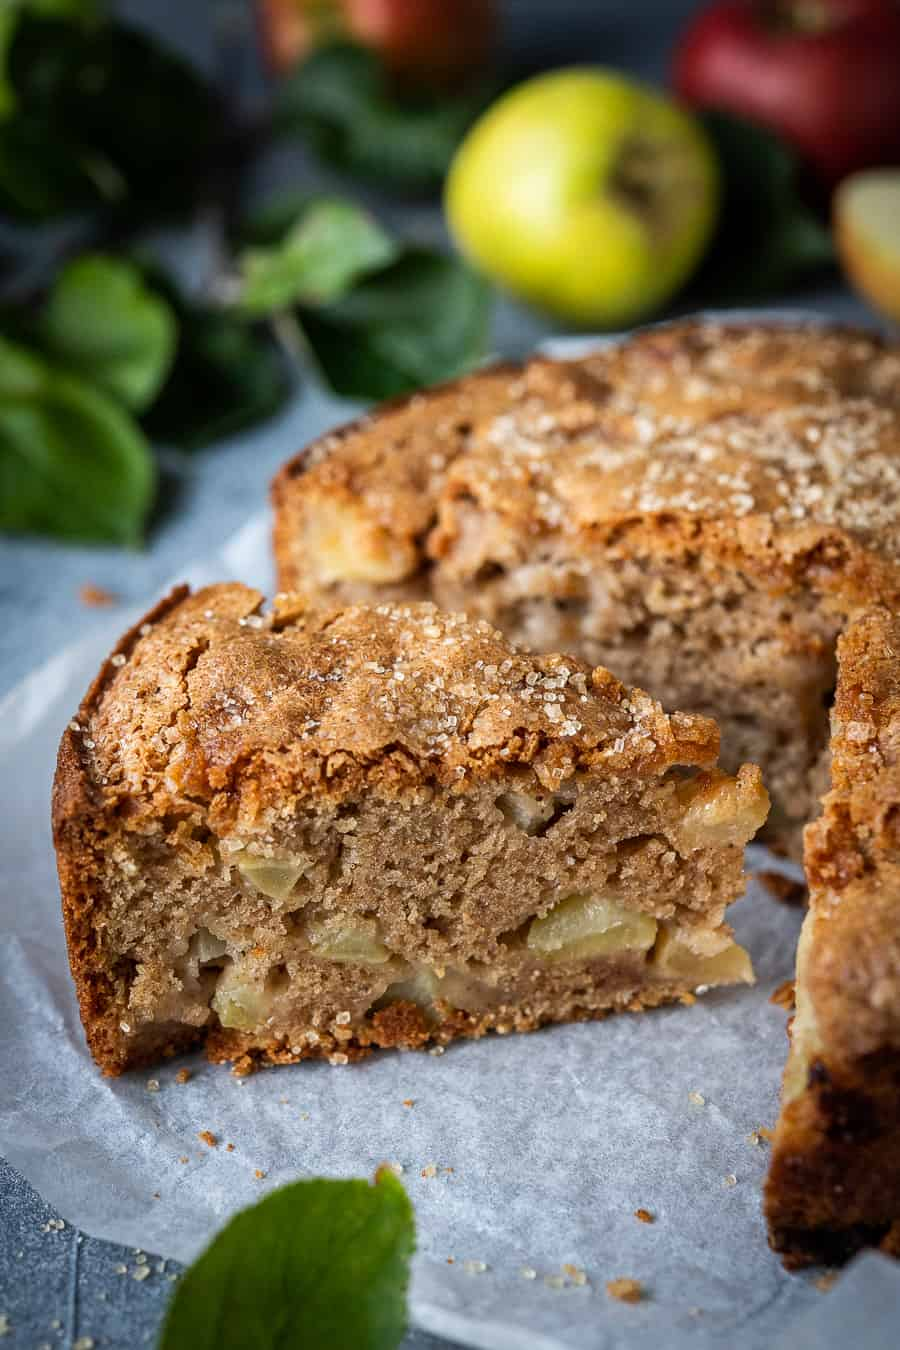 close up of a slice of vegan apple cake with apples and apple tree leaves in the background.